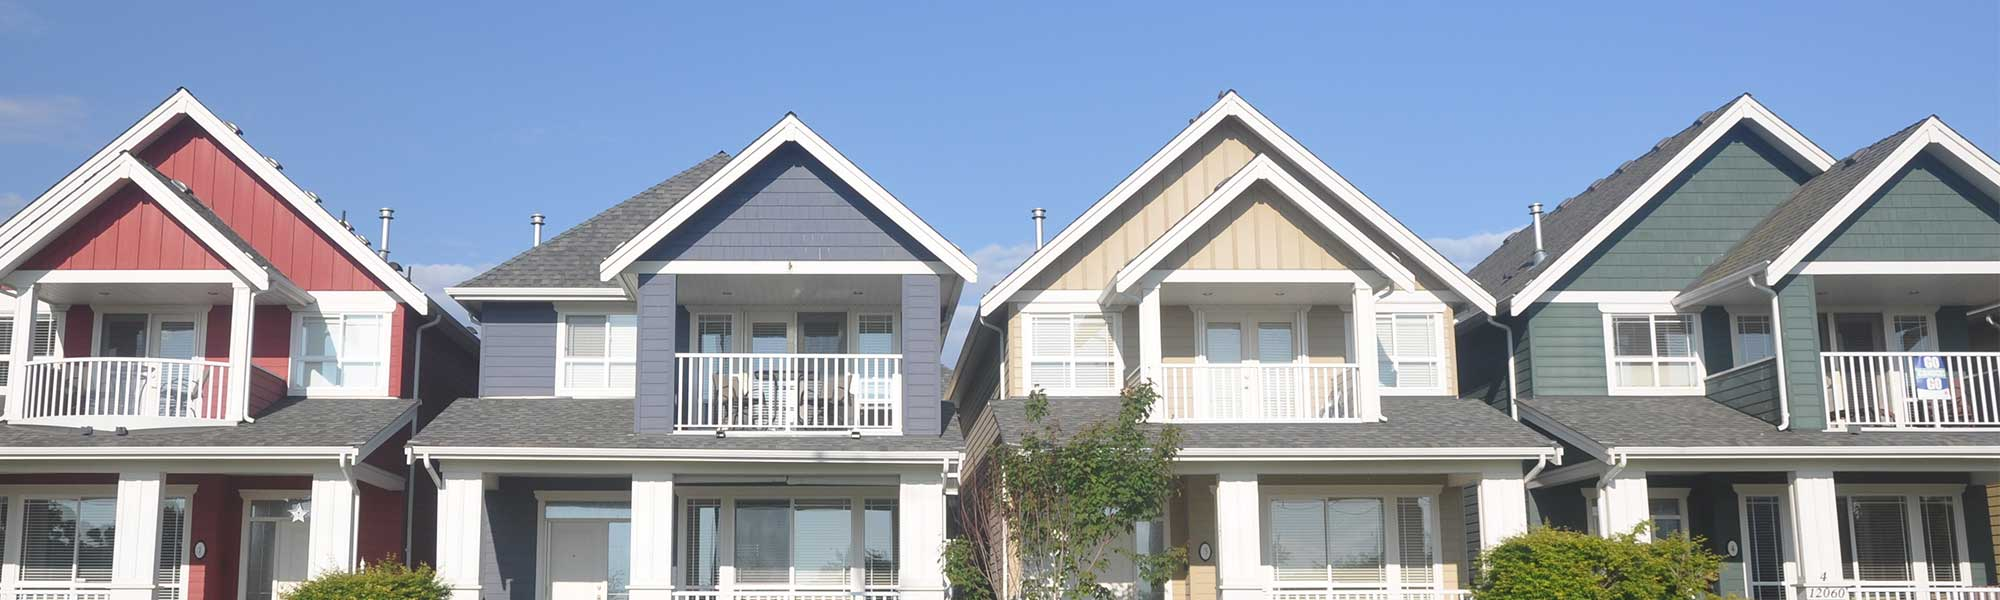 3 Takeaways from the Single-Family Rentals Conference